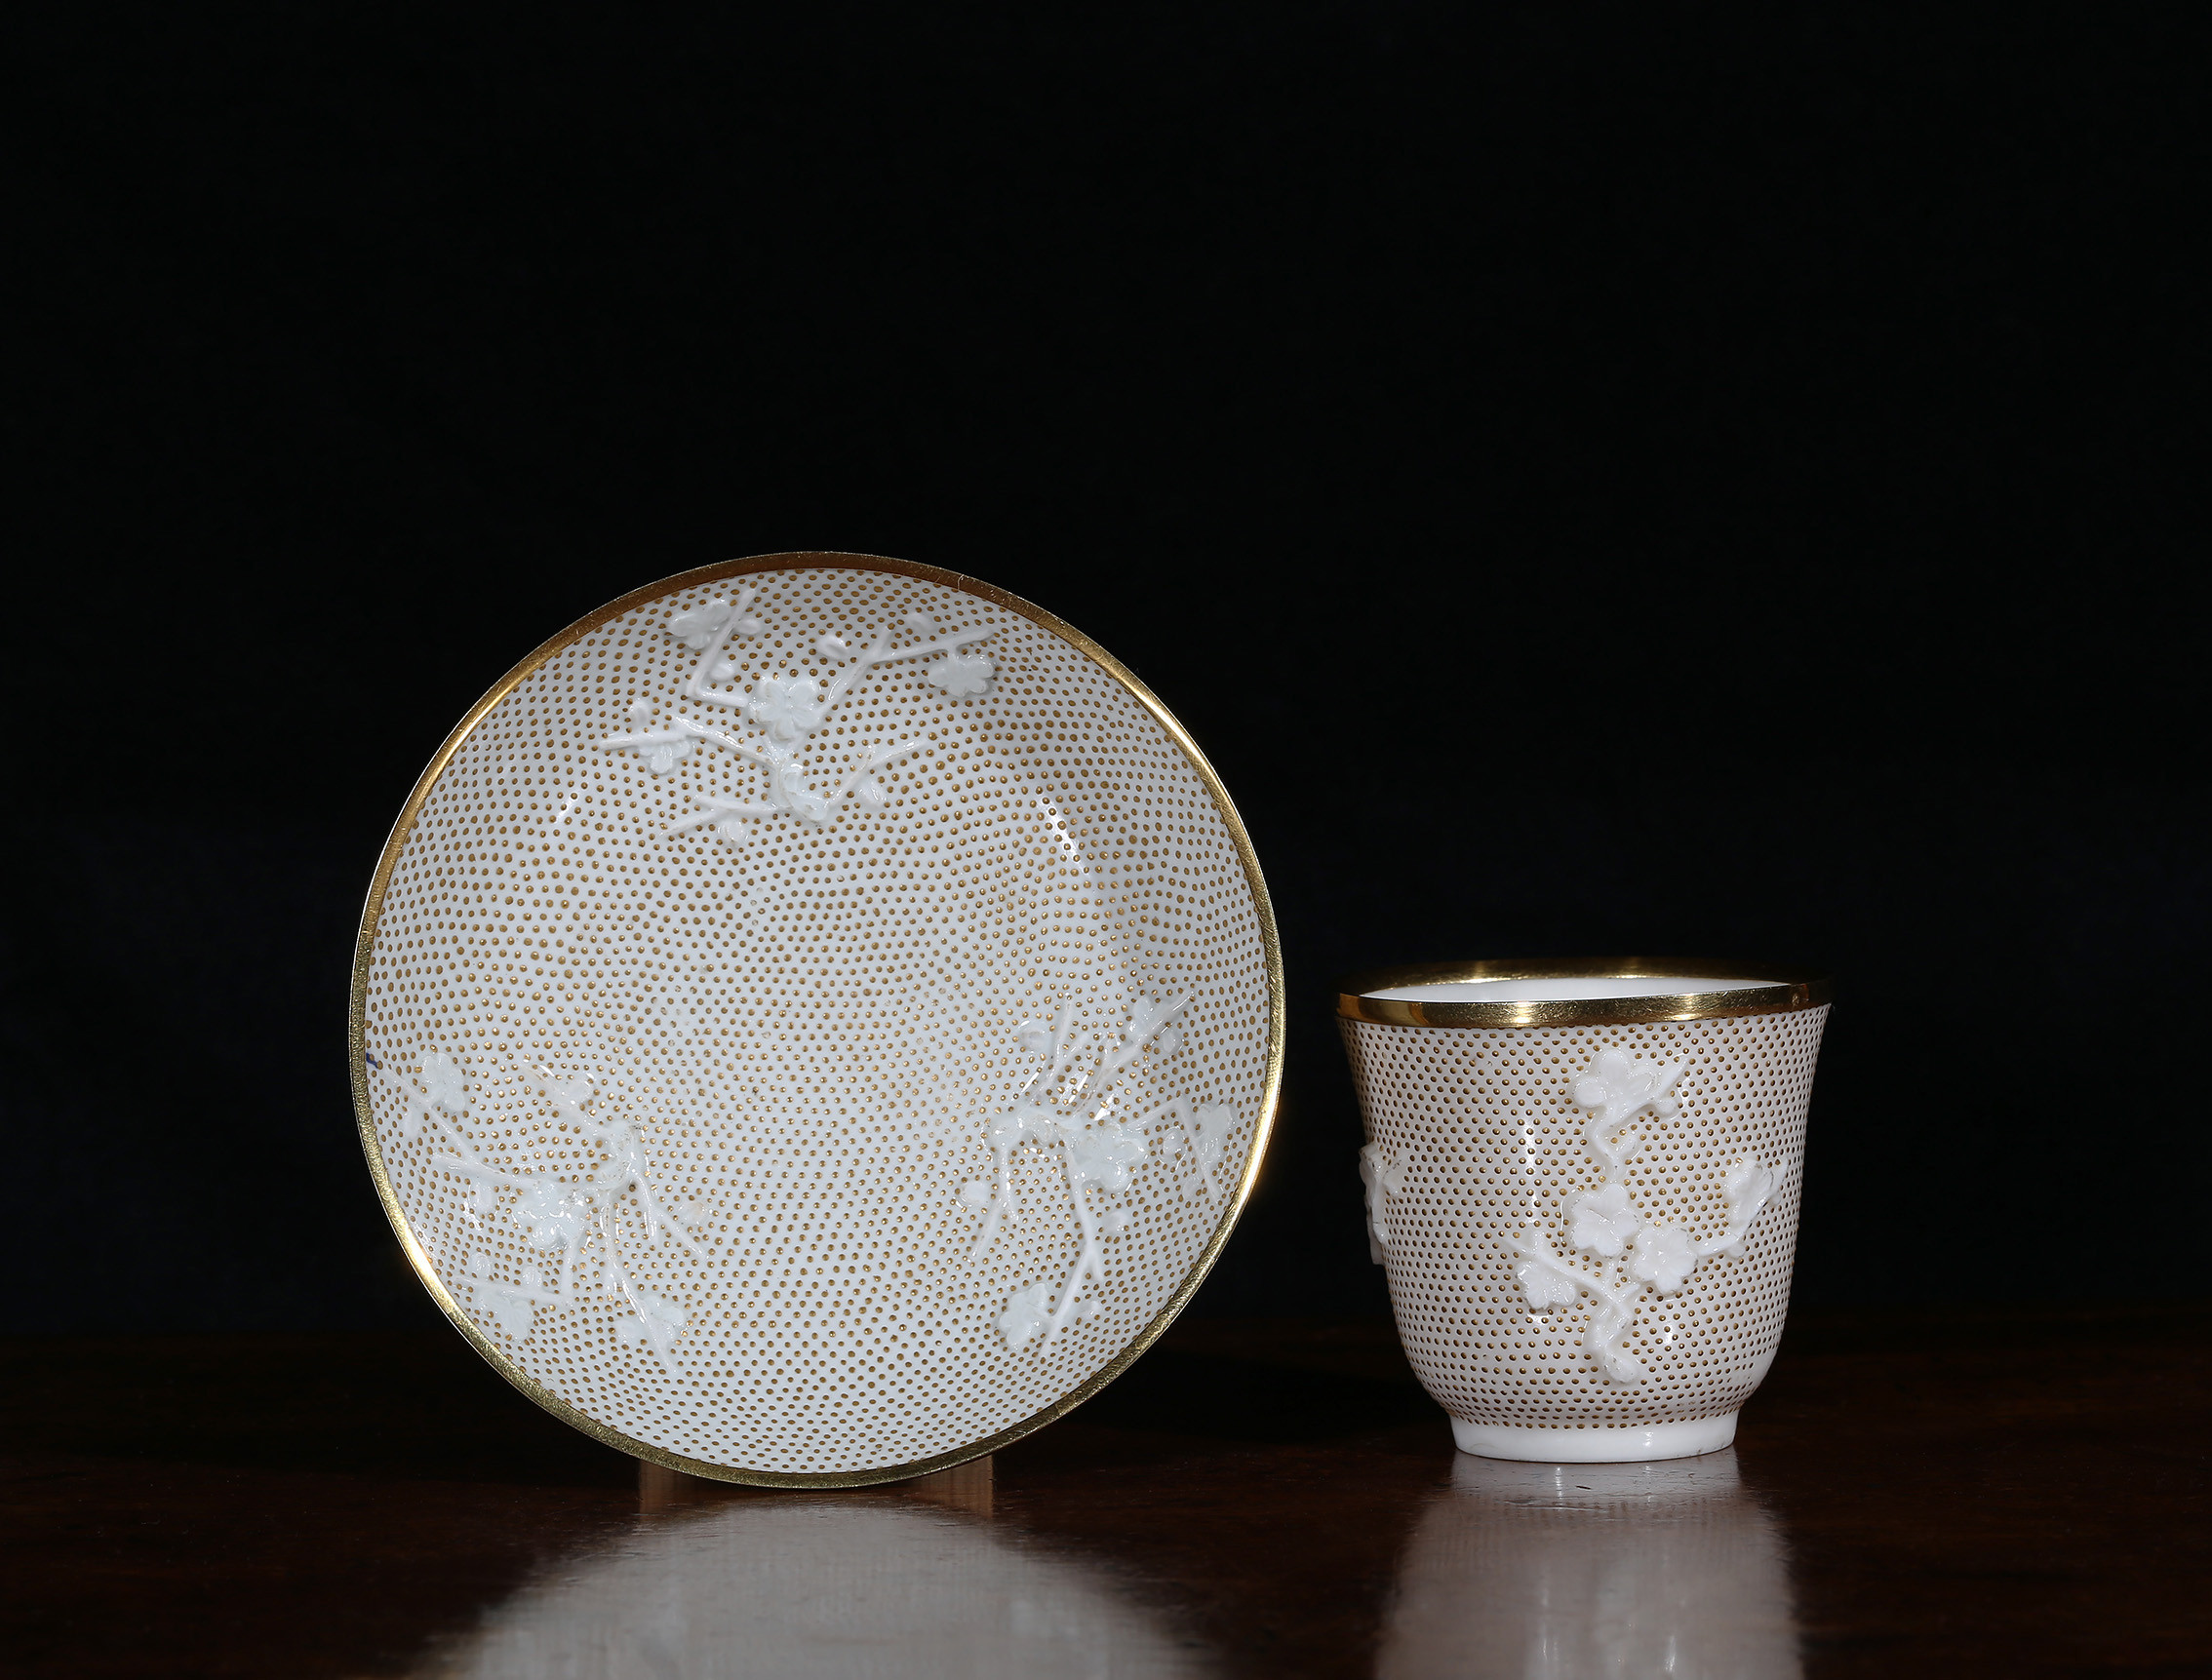 A gold-mounted Piqué d'Or Chinese Dehua beaker and Saint Cloud saucer